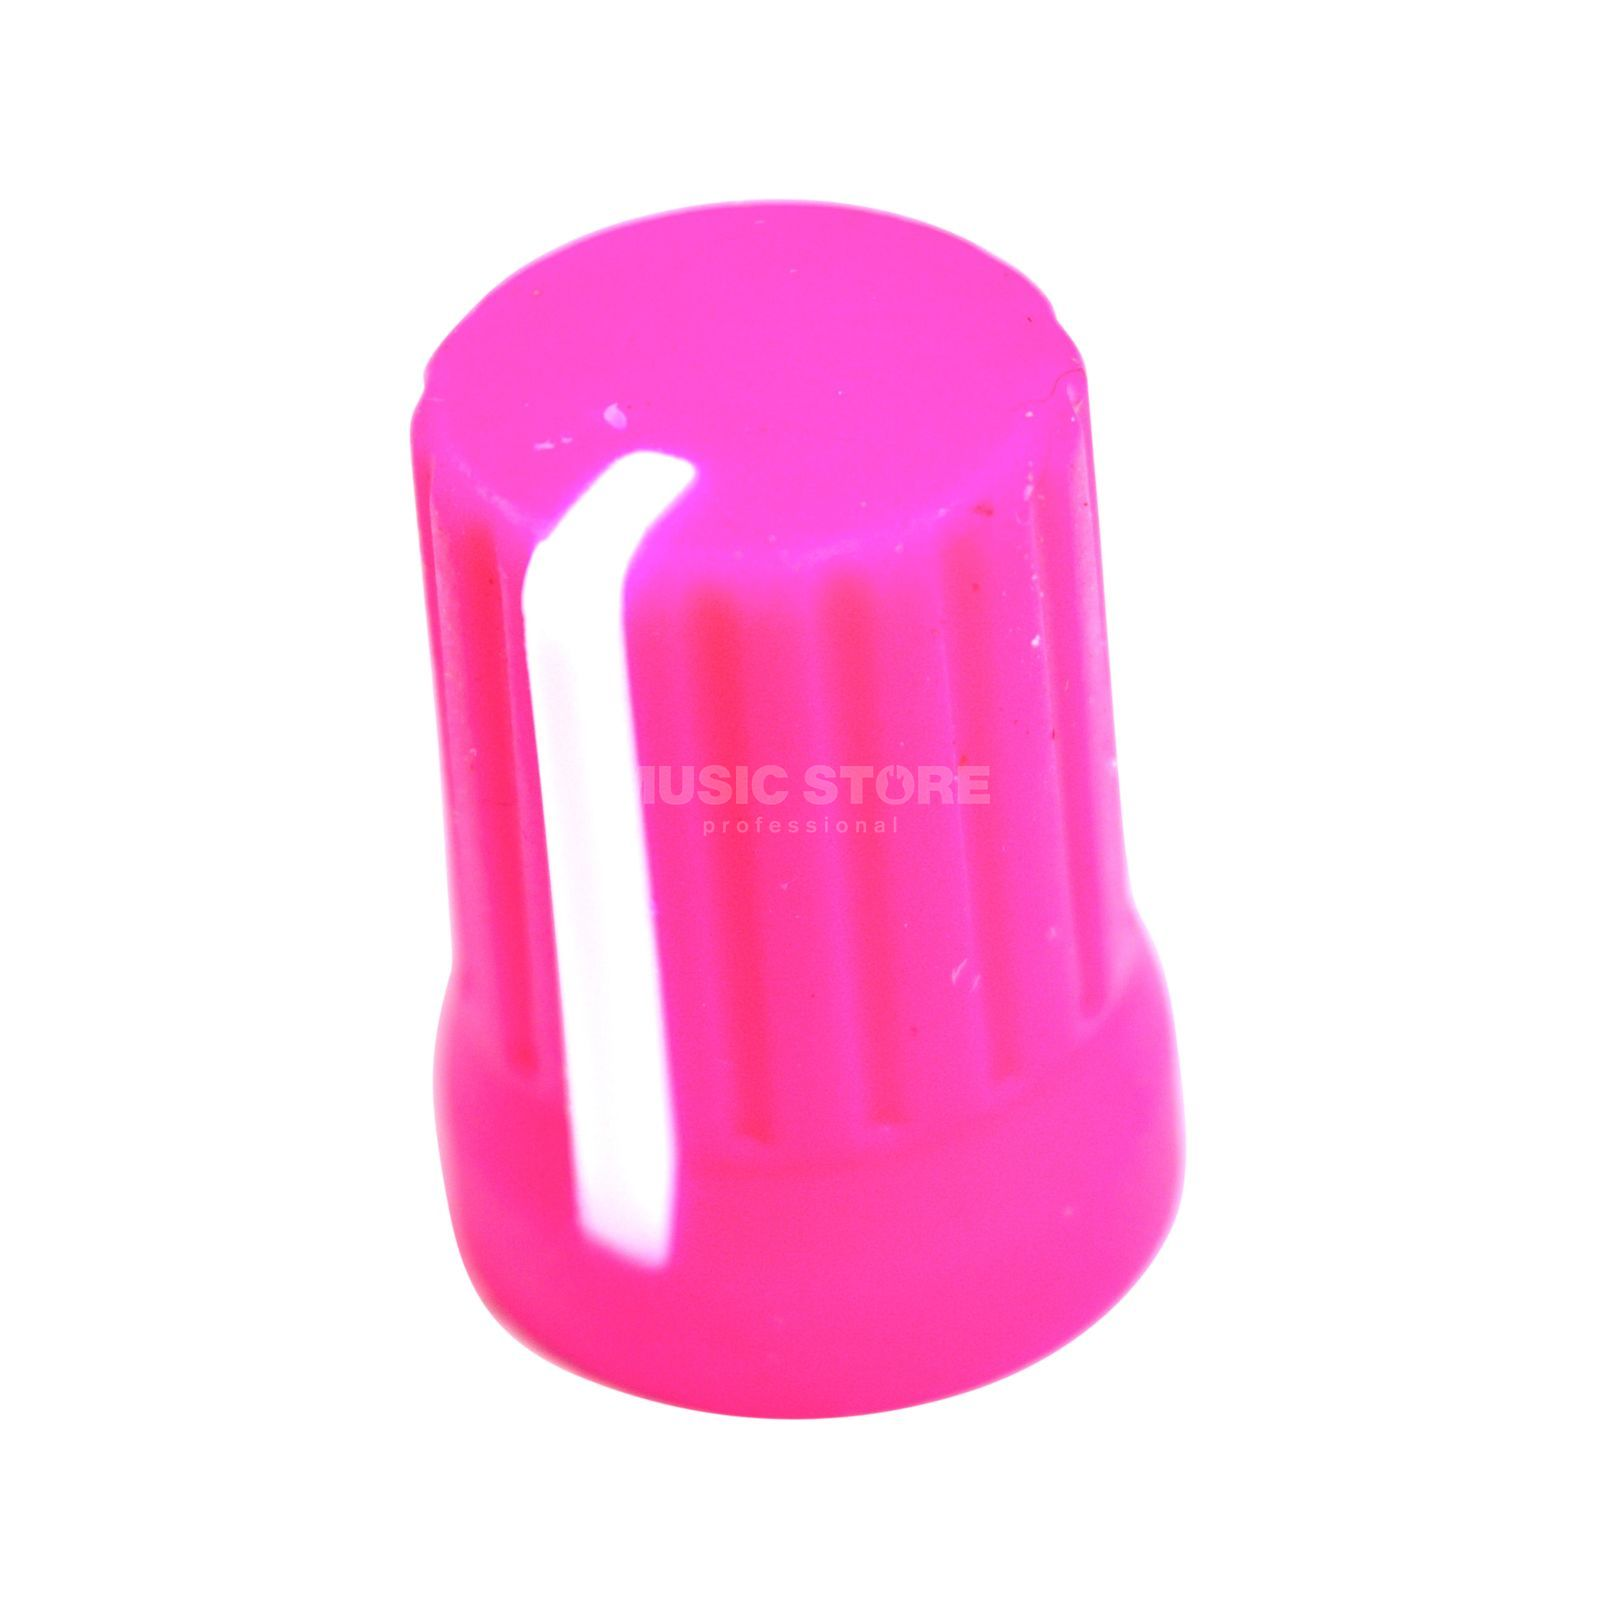 DJ TECHTOOLS Chroma Caps Superknob magenta  Product Image